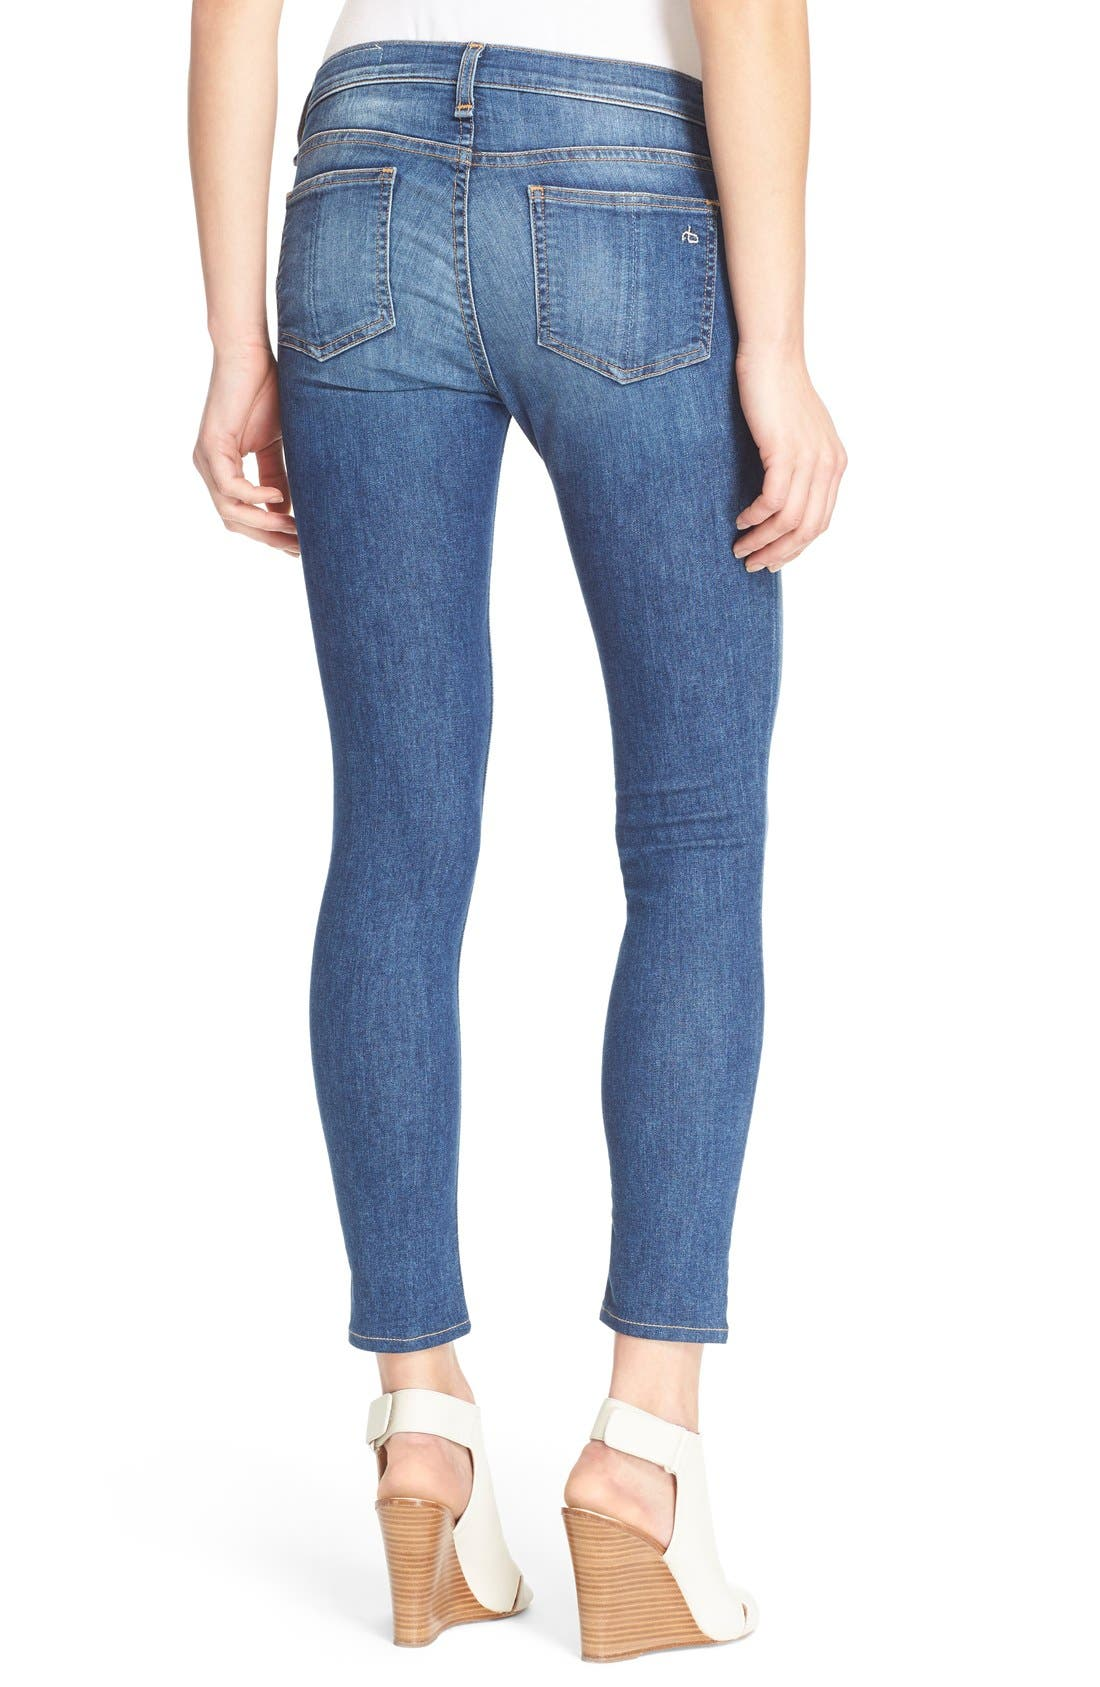 RAG & BONE, Capri Crop Skinny Jeans, Alternate thumbnail 5, color, RAE